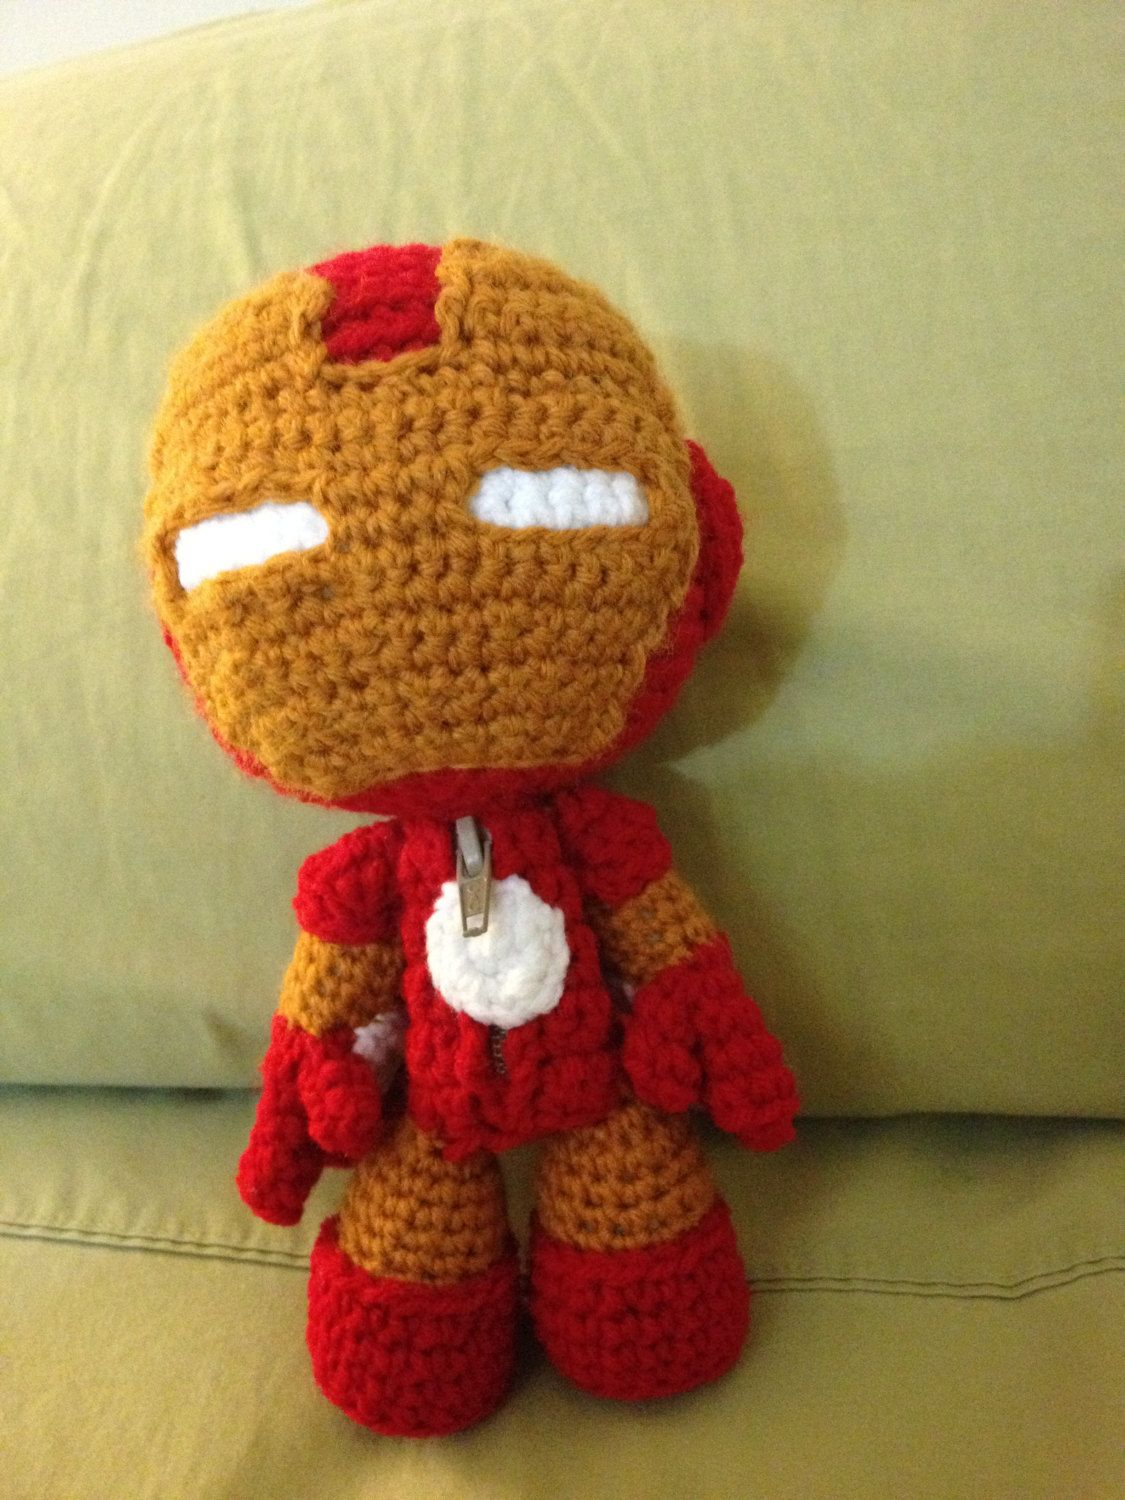 Iron Man Sackboy PATTERN | ♥ Amigurumi!! ♥ Community Board ...